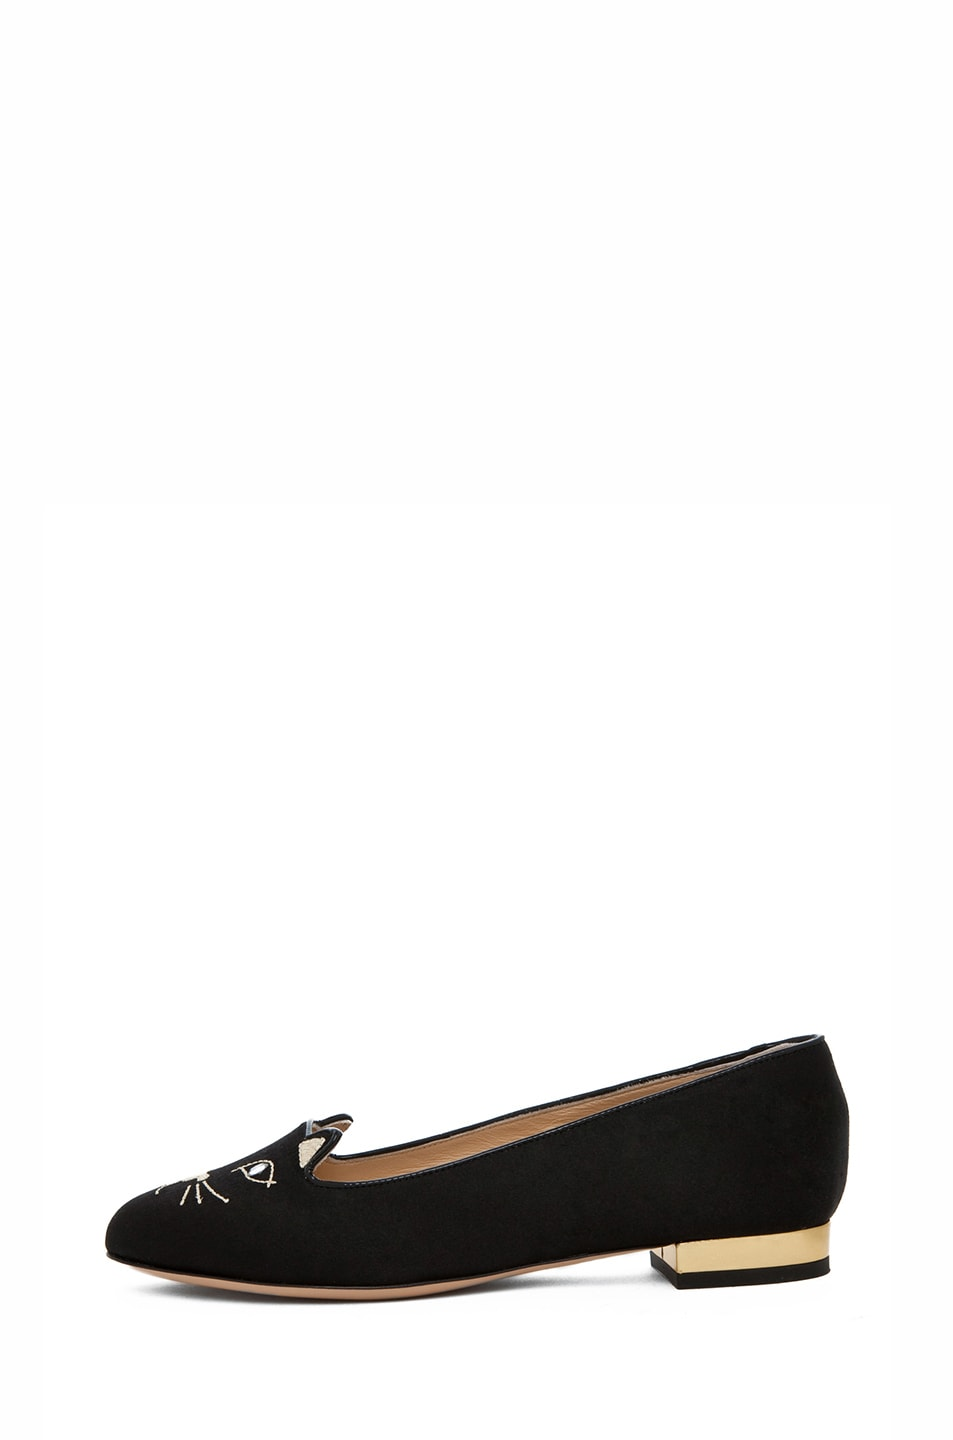 Image 1 of Charlotte Olympia Kitty Satin Flats in Black & Gold